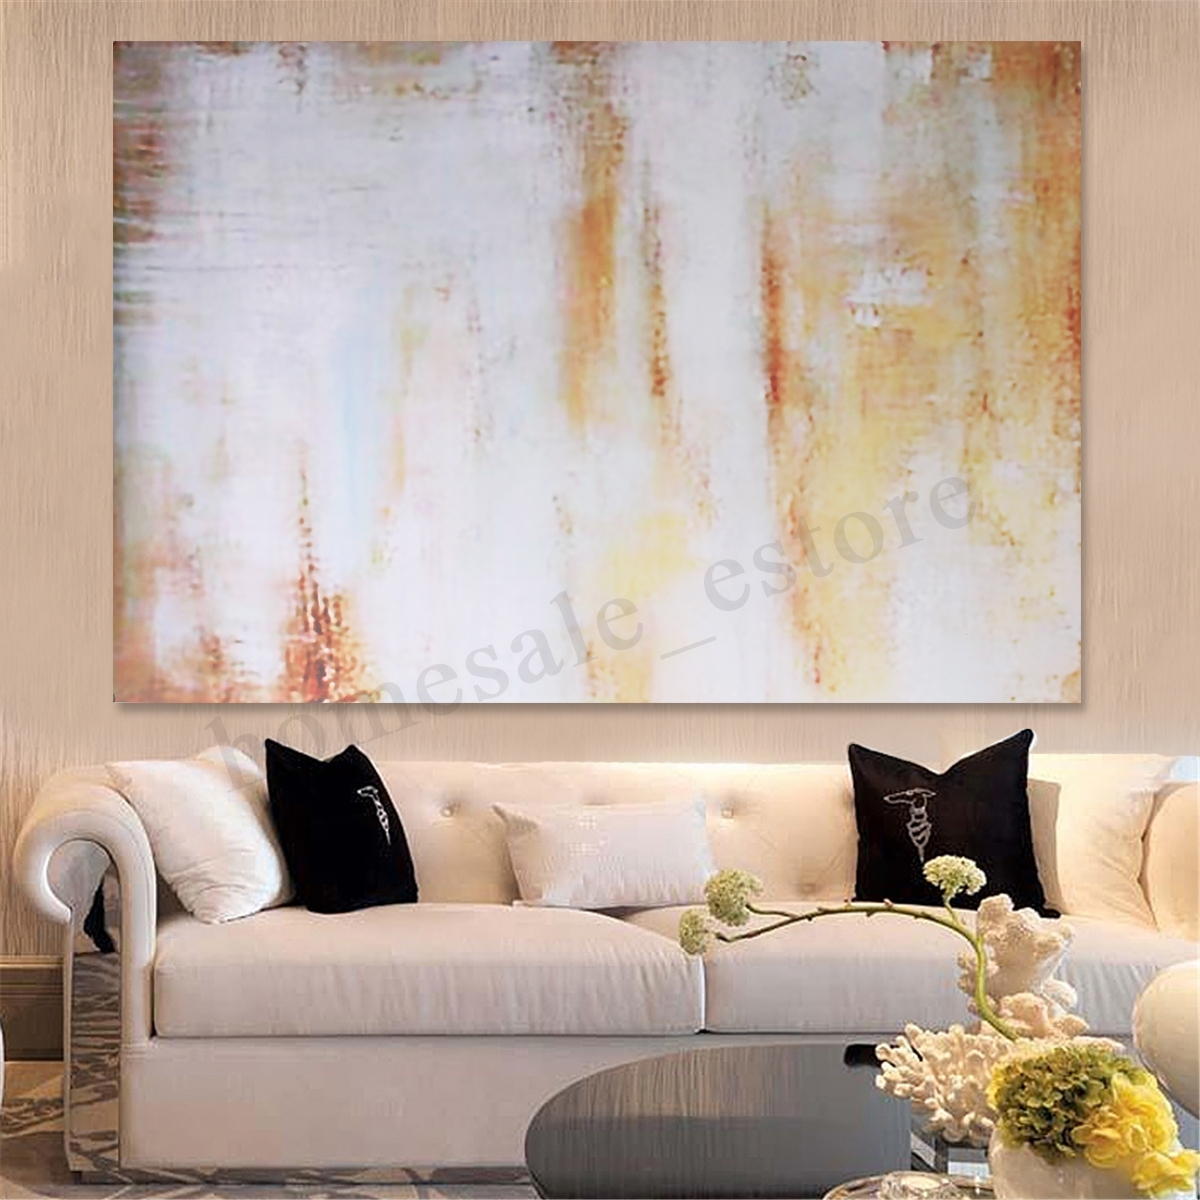 Unframed/framed Modern Canvas Oil Painting Print Picture Wall Art Within Most Recently Released Modern Framed Wall Art Canvas (View 17 of 20)